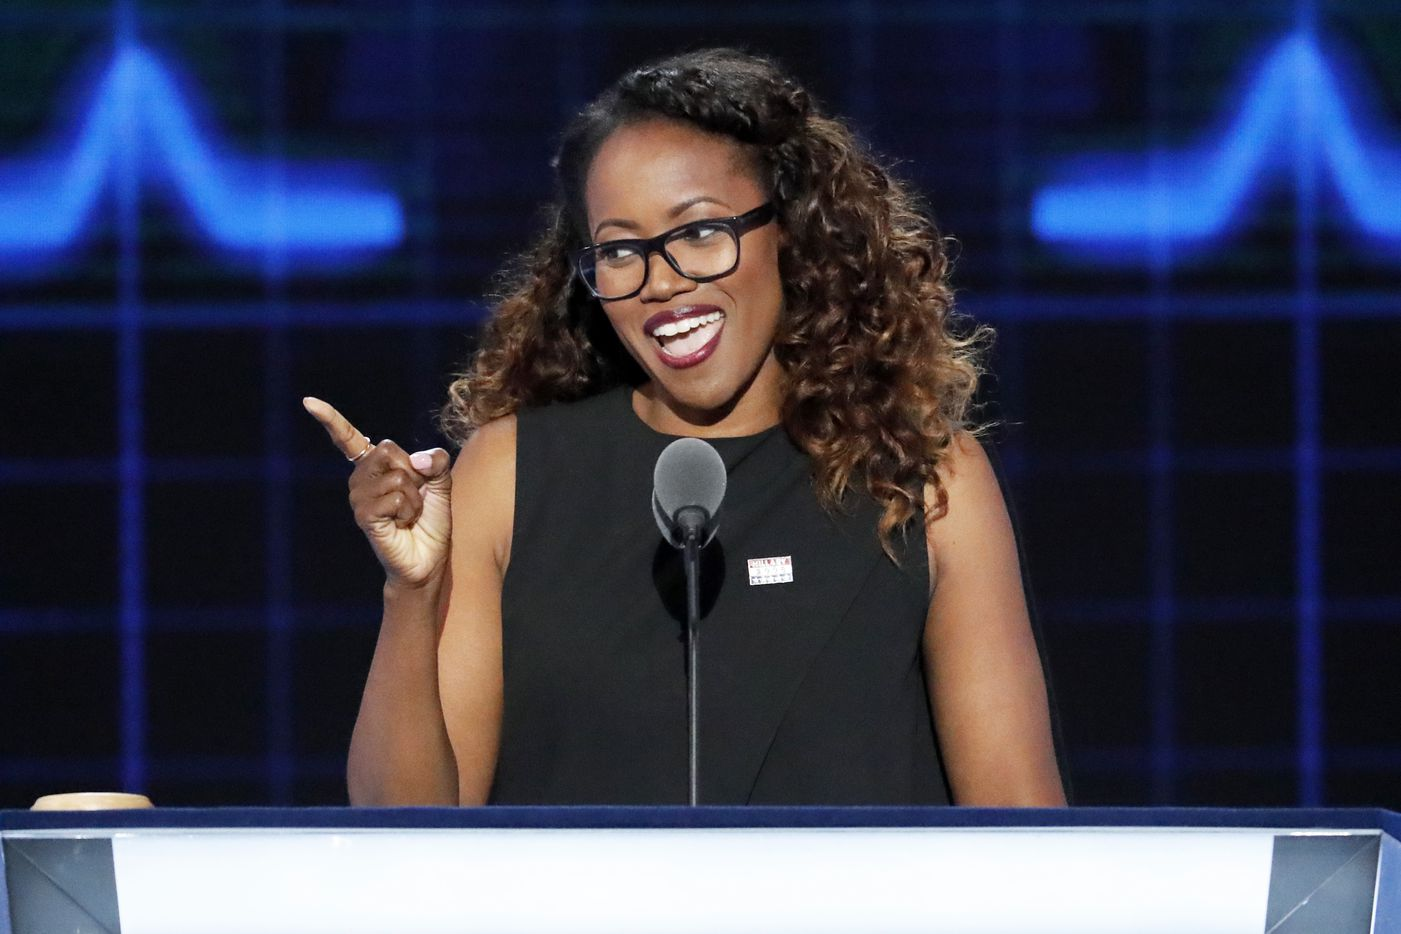 Actress Erika Alexander speaks during the second day of the Democratic National Convention.